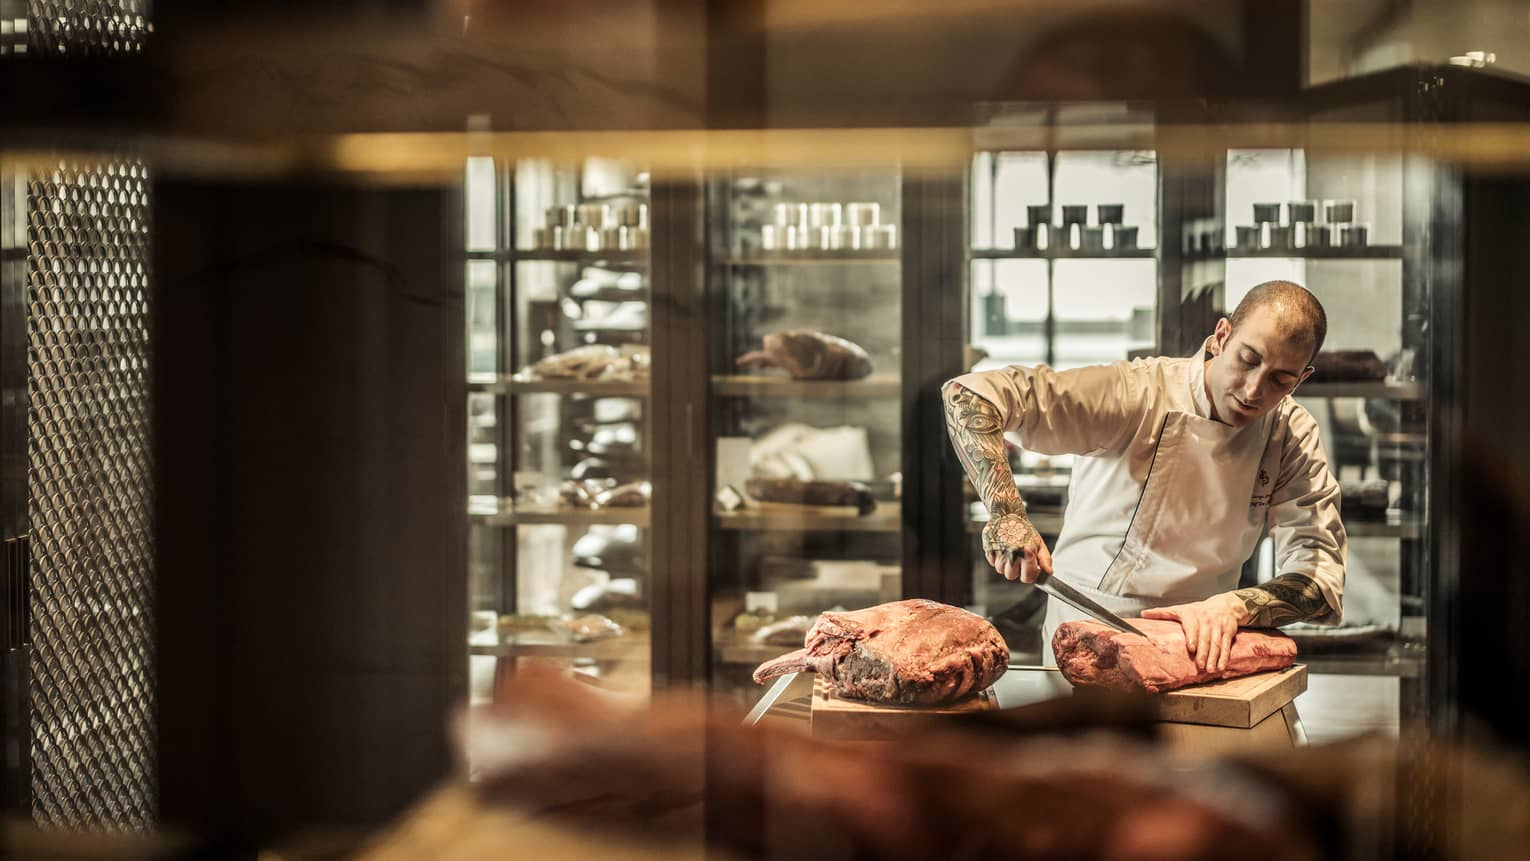 Chef in uniform with tattoos on arm carves large piece of raw meat on butcher's block